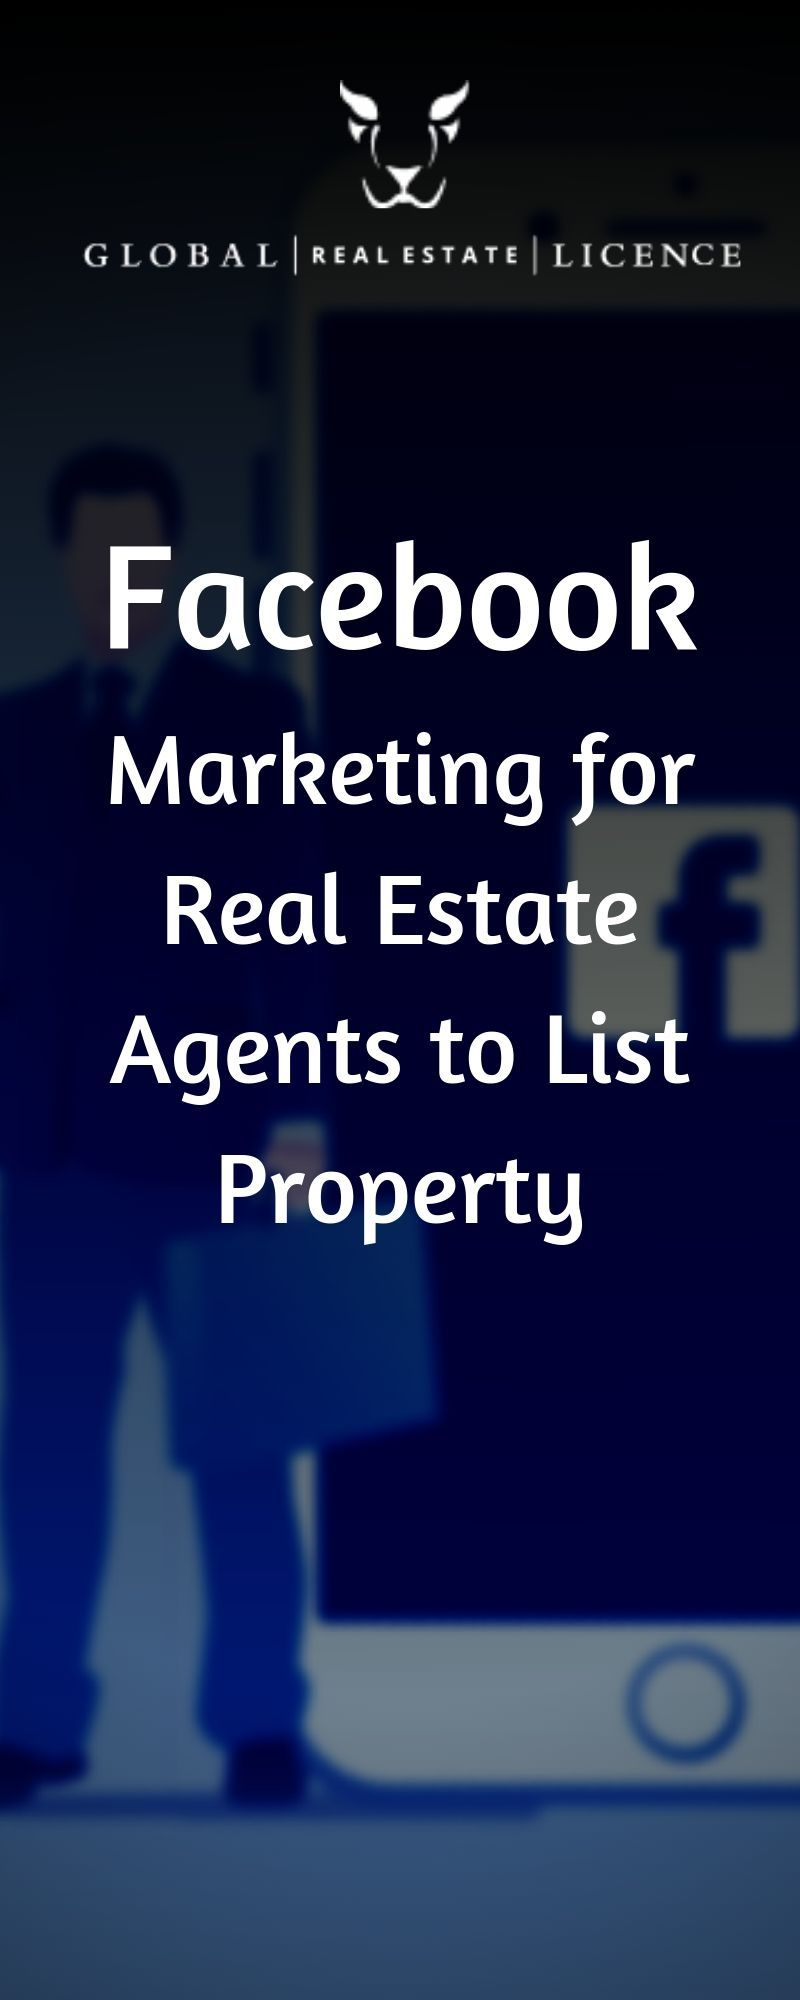 How To Promote Property Listings Through Facebook (With ...